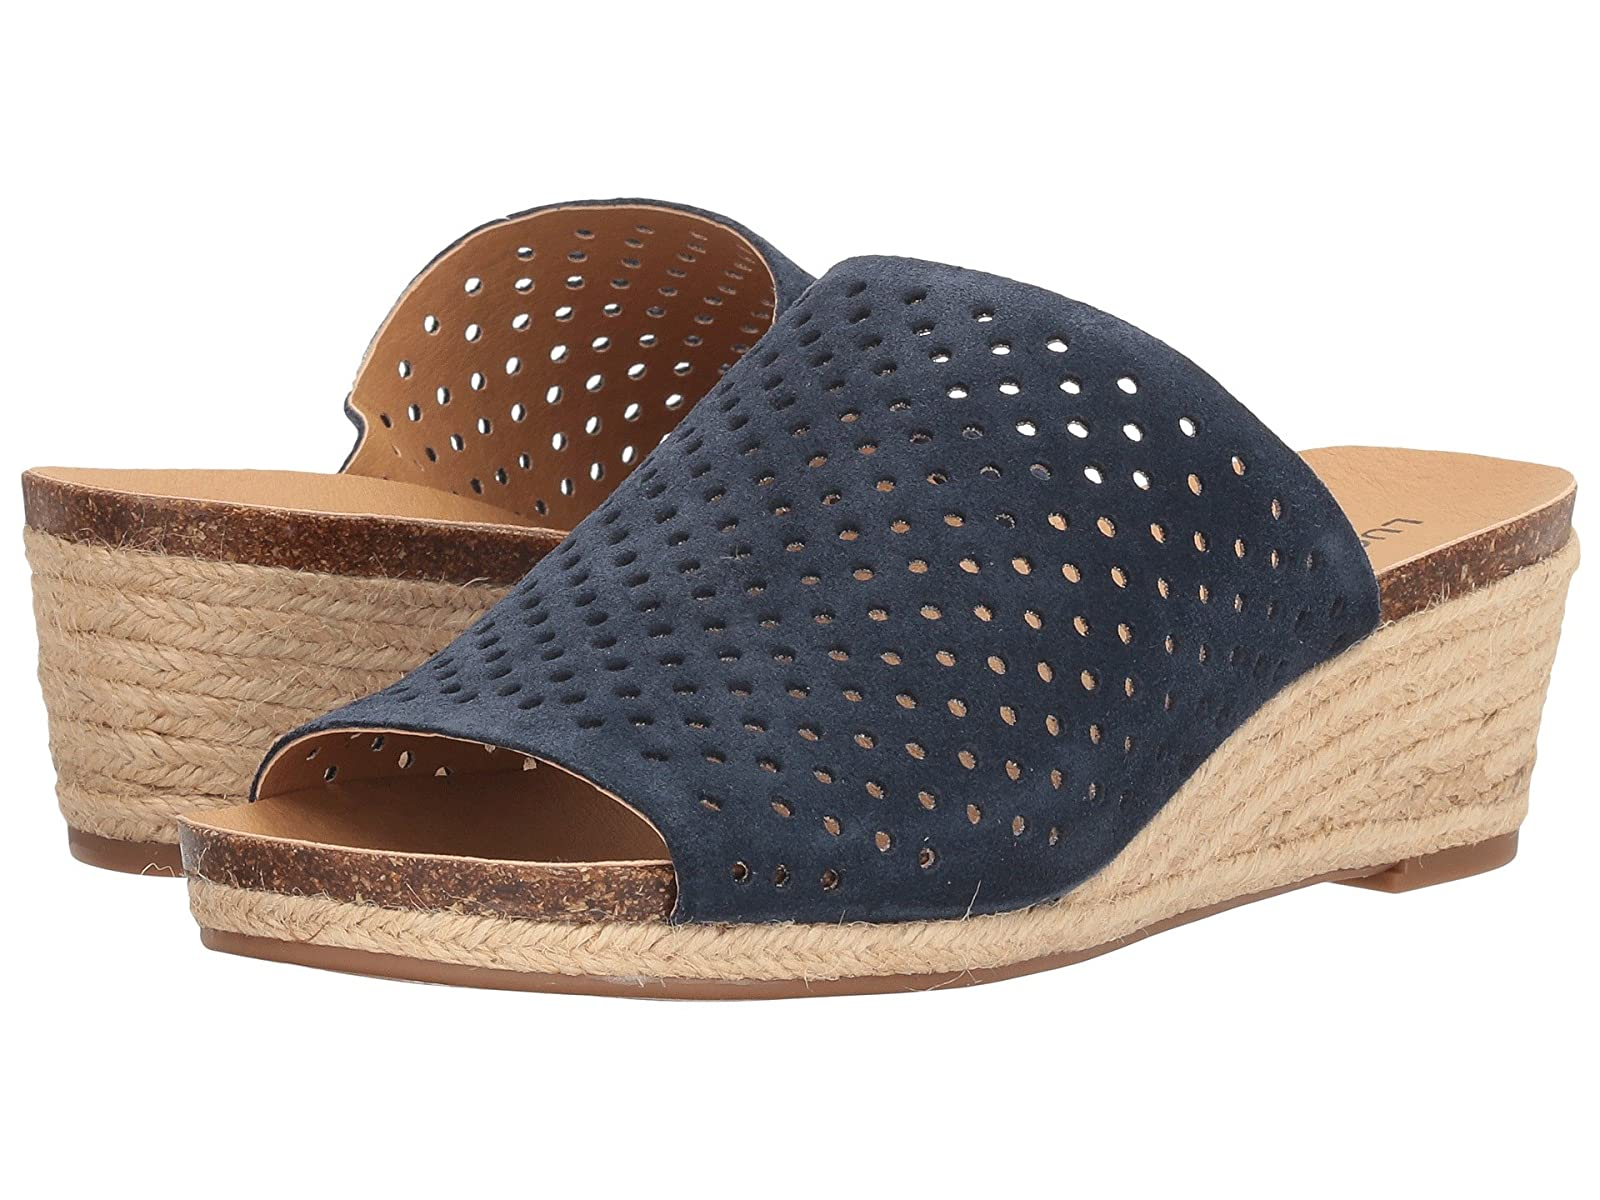 Lucky Brand JemyaCheap and distinctive eye-catching shoes